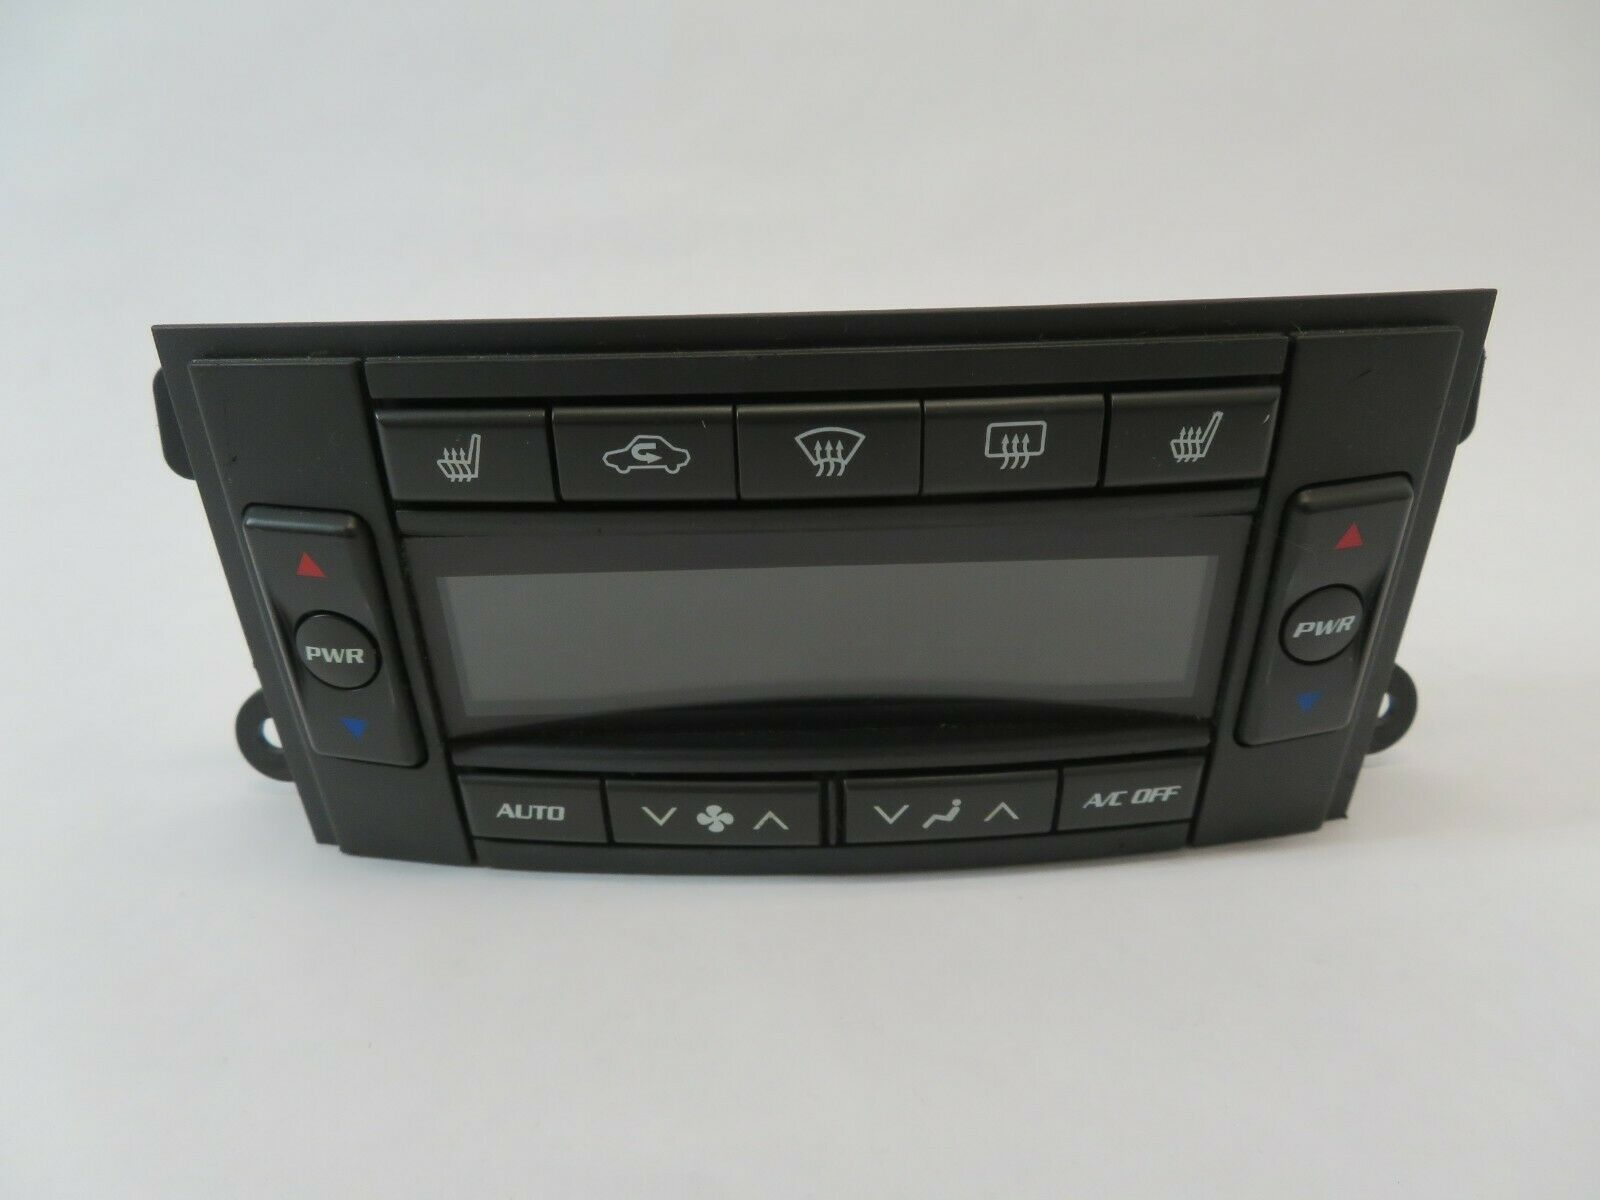 Primary image for #3564C CADILLAC SRX 05 06 OEM DASH TEMP AC HEAT AIR CLIMATE CONTROL SWITCH